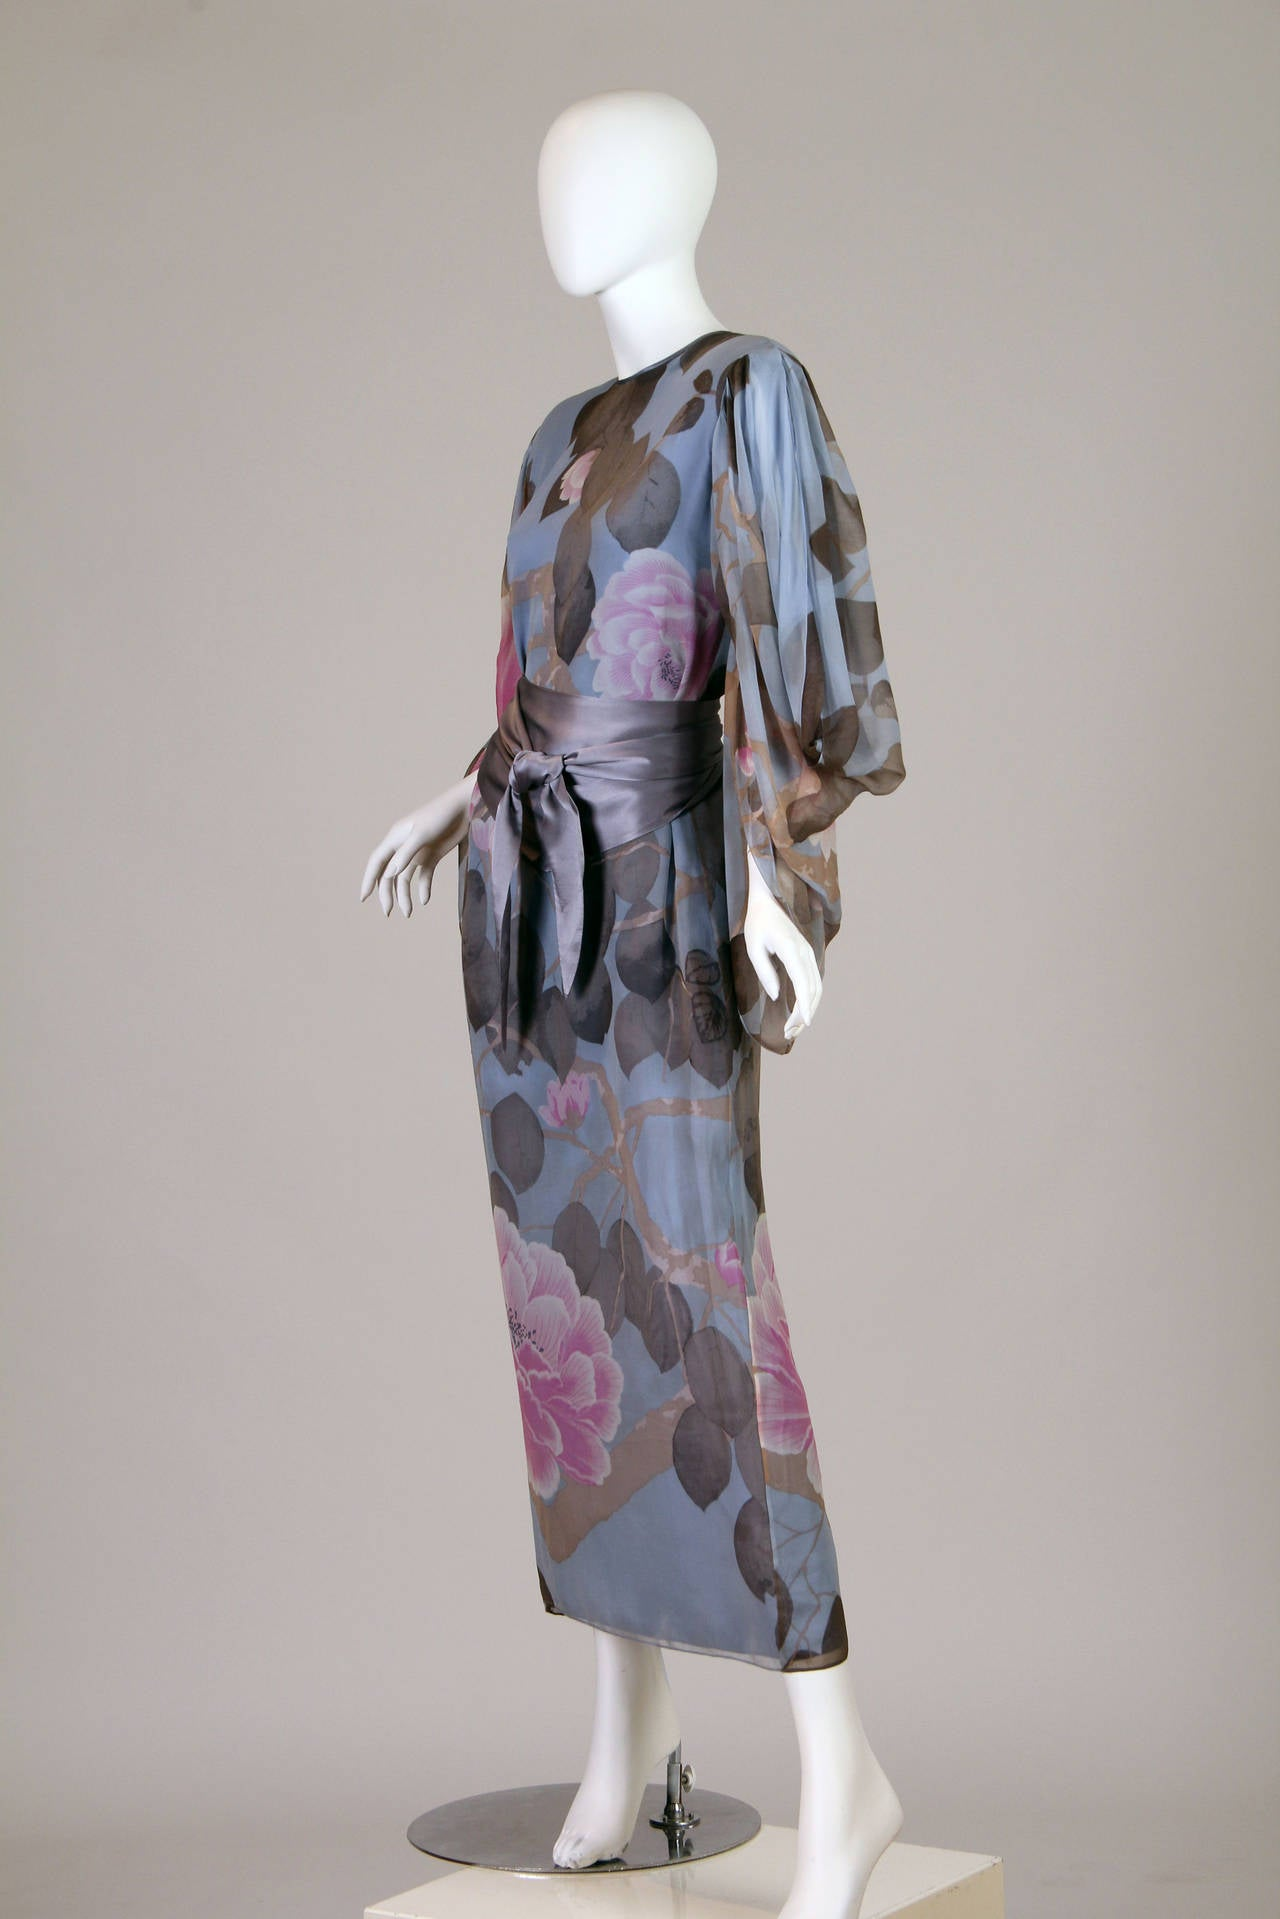 This beautiful silk vintage floral print dress is a quality garment by Hanae Mori. Mori opened her fashion house in 1951 and steadily became more and more popular with these gloriously feminine, light and airy dresses until she became the first